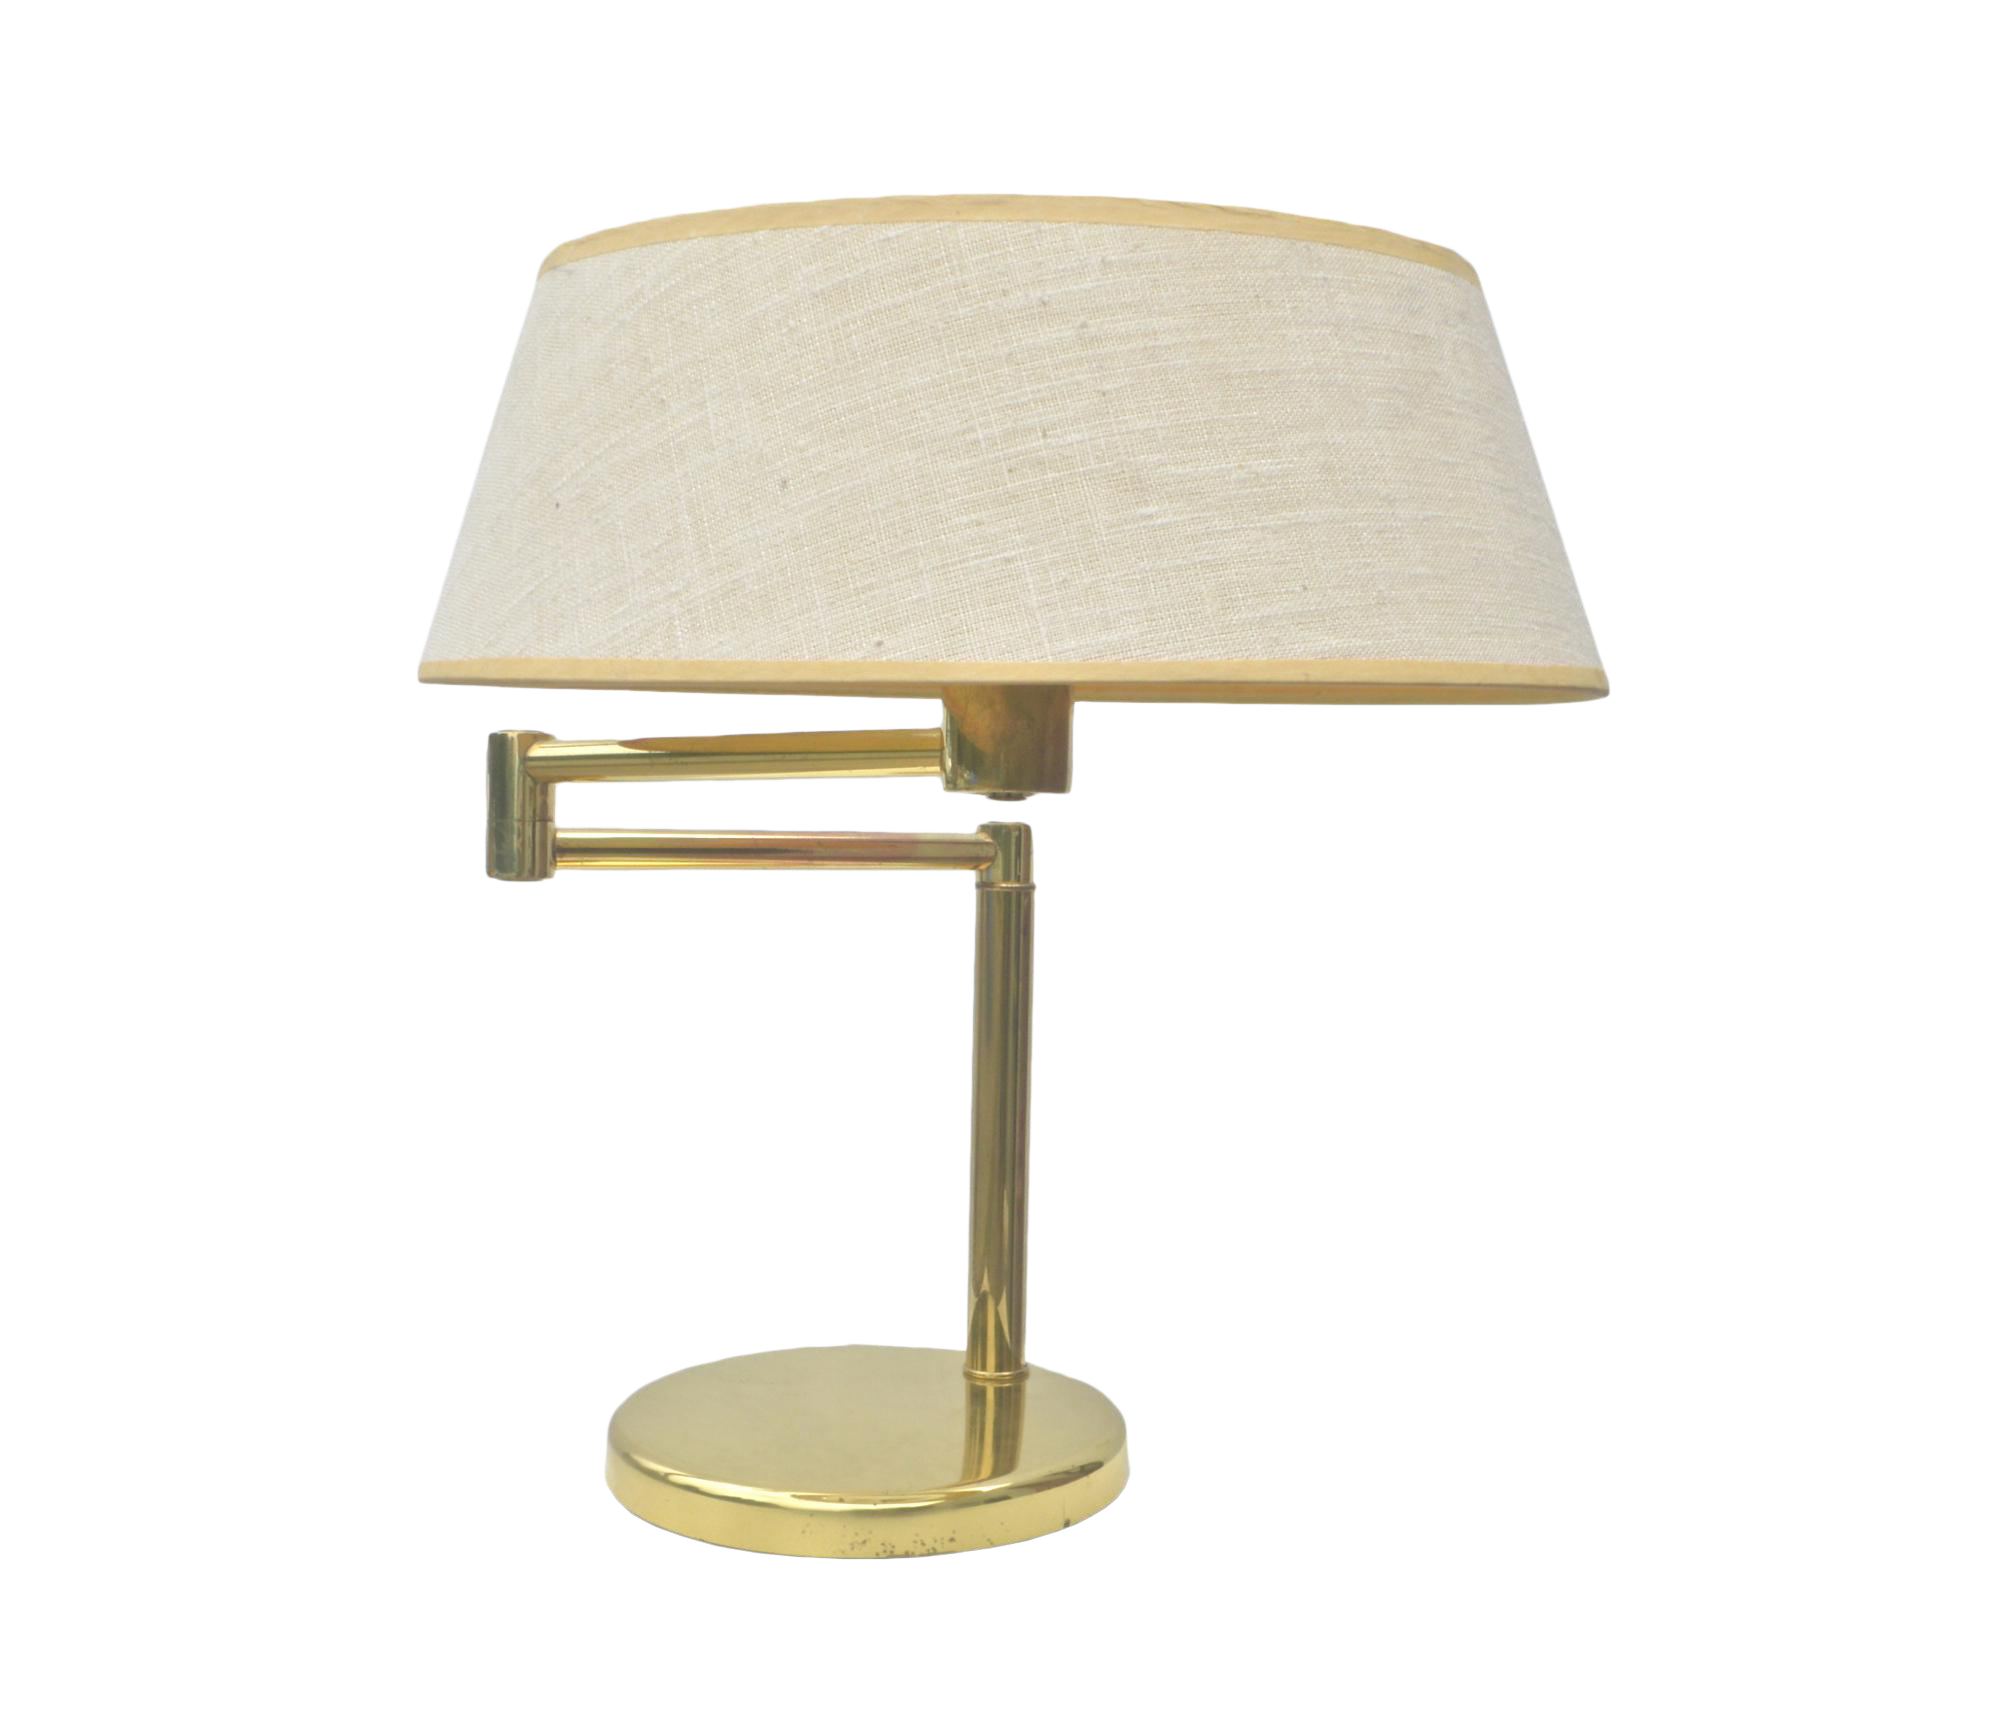 Vintage used art deco table lamps chairish mid century brass desk lamp by walter von nessen geotapseo Image collections